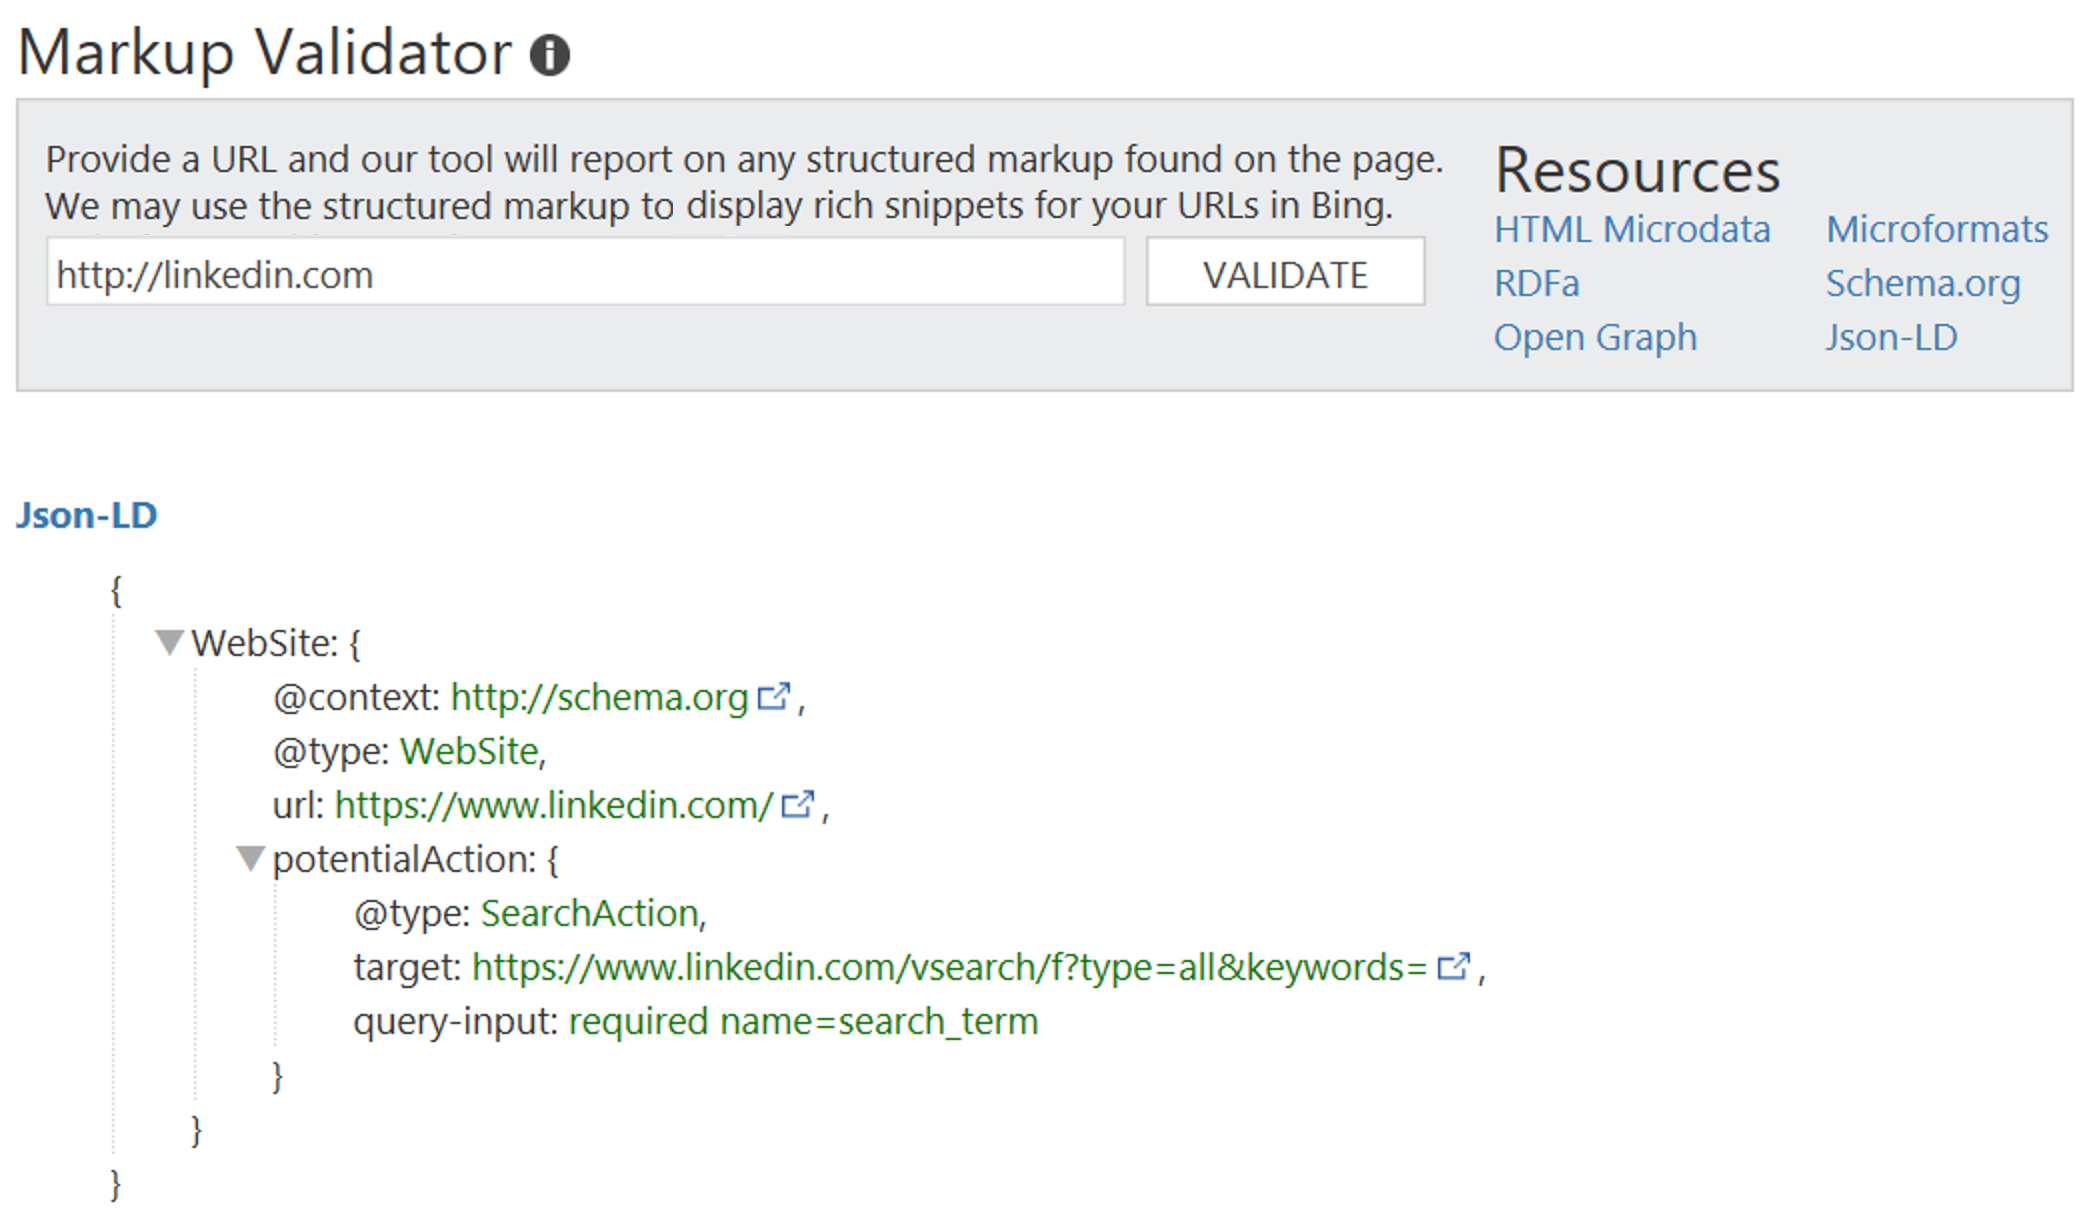 JSON-LD Support Added to Bing Markup Validator